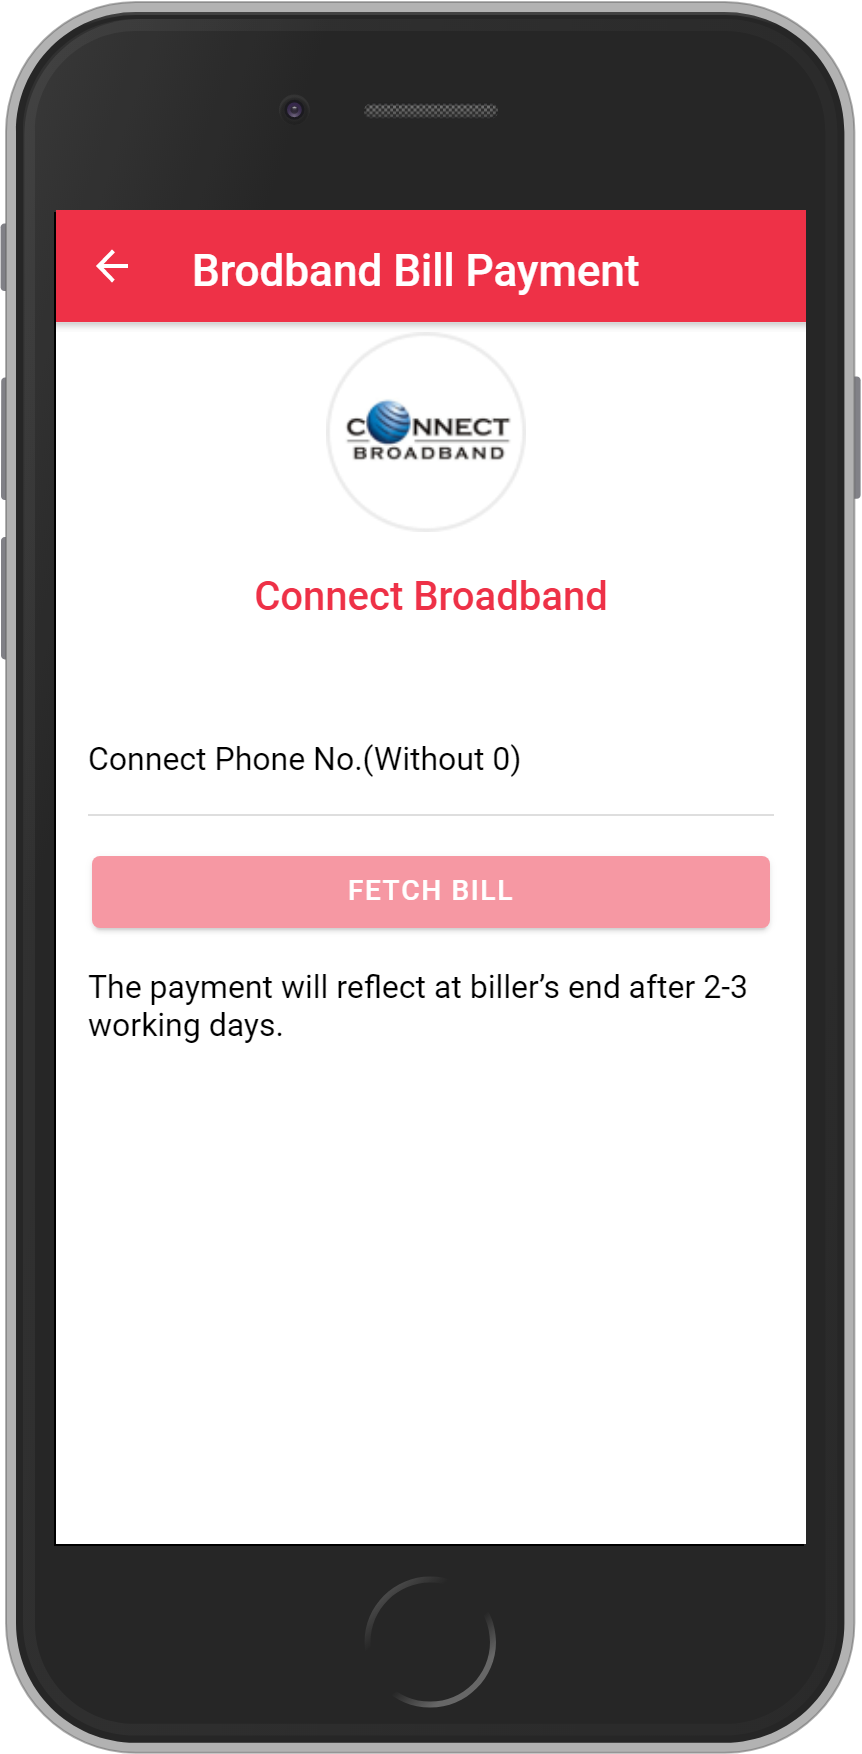 Get UNLIMITED <b>0.1%</b> CASHBACK on Connect Broadband Bill Payment.